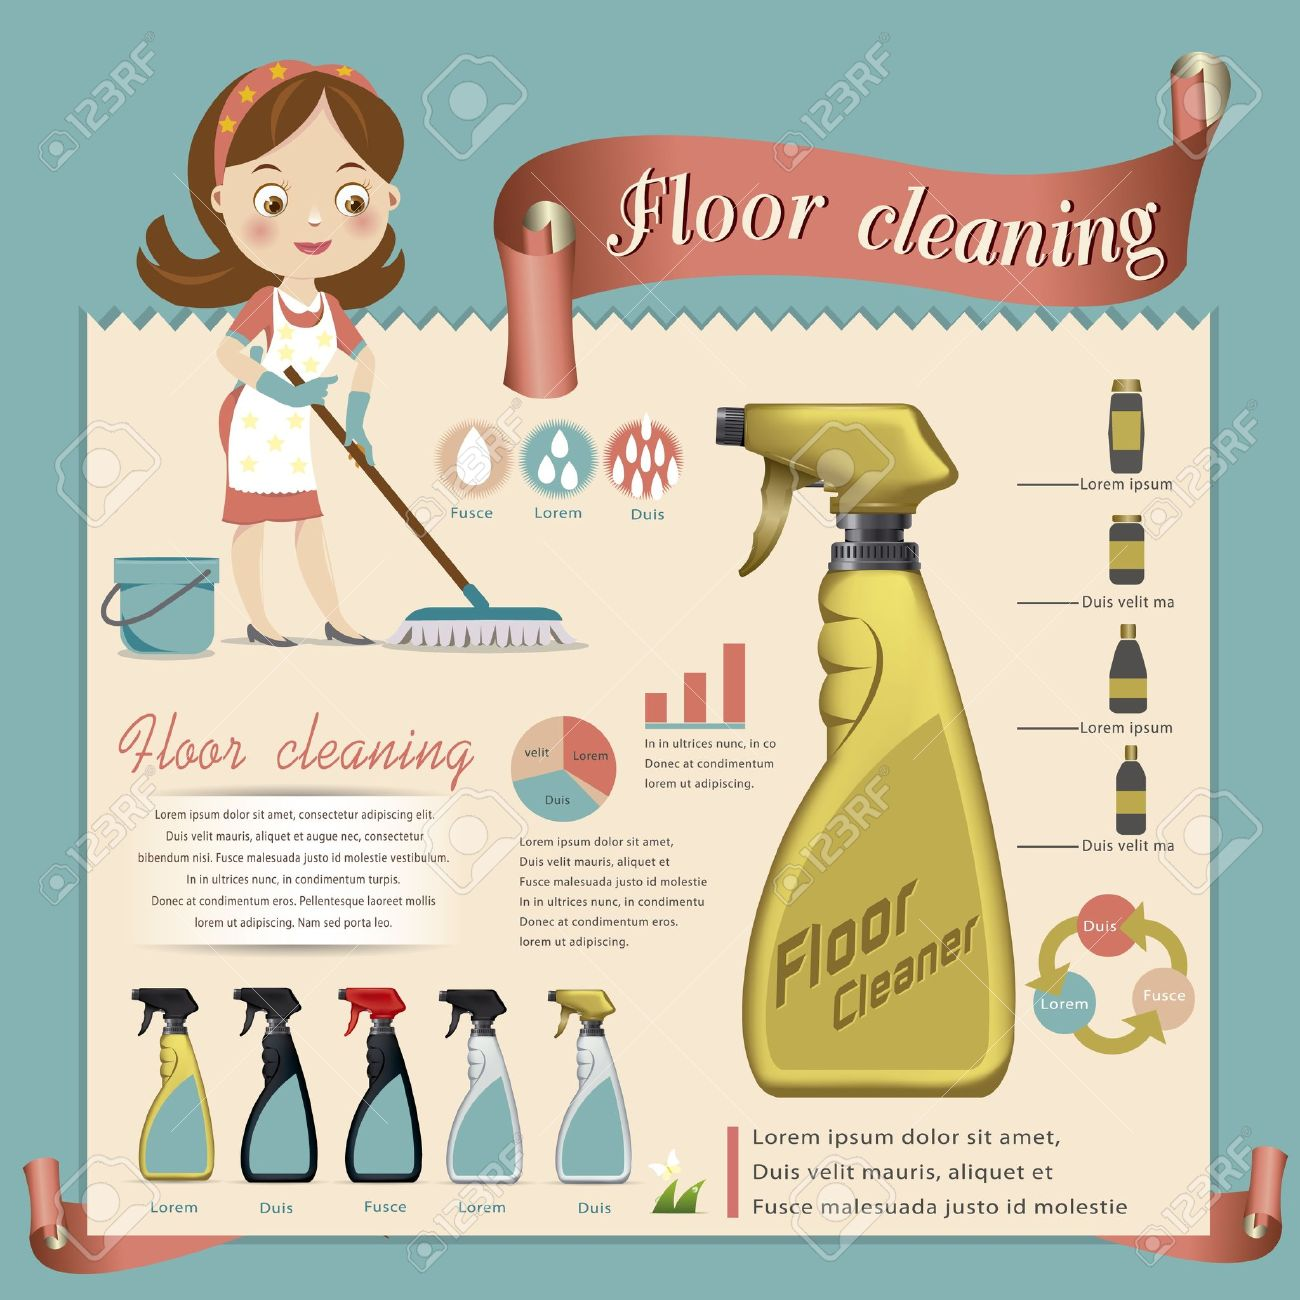 cleaning service images stock pictures royalty cleaning cleaning service floor cleaner vector illustration